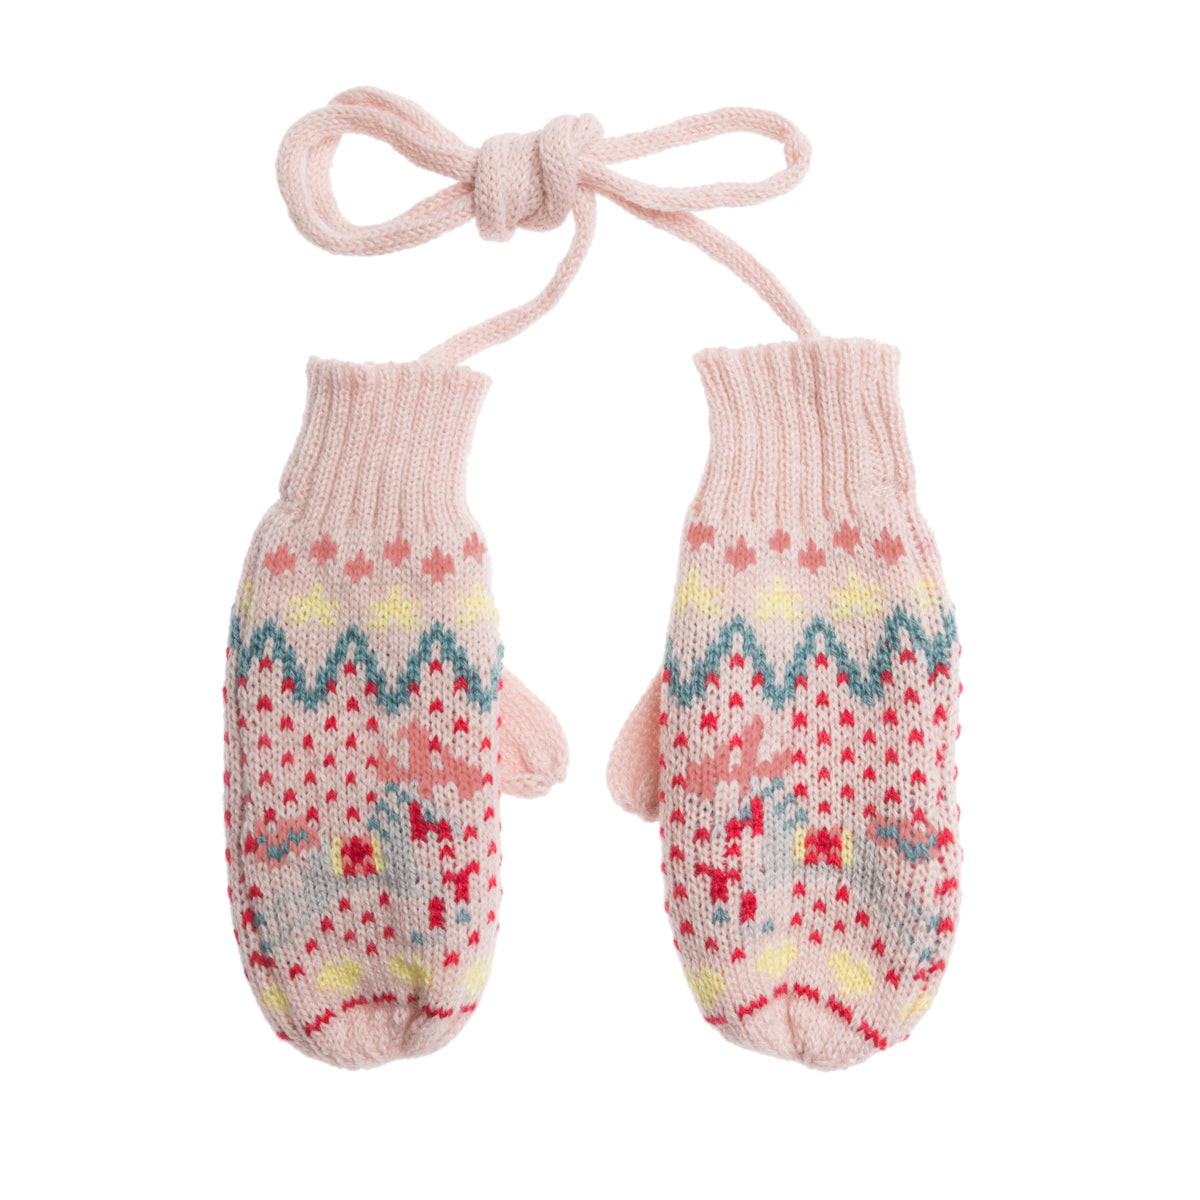 Knitted kids mittens for winter